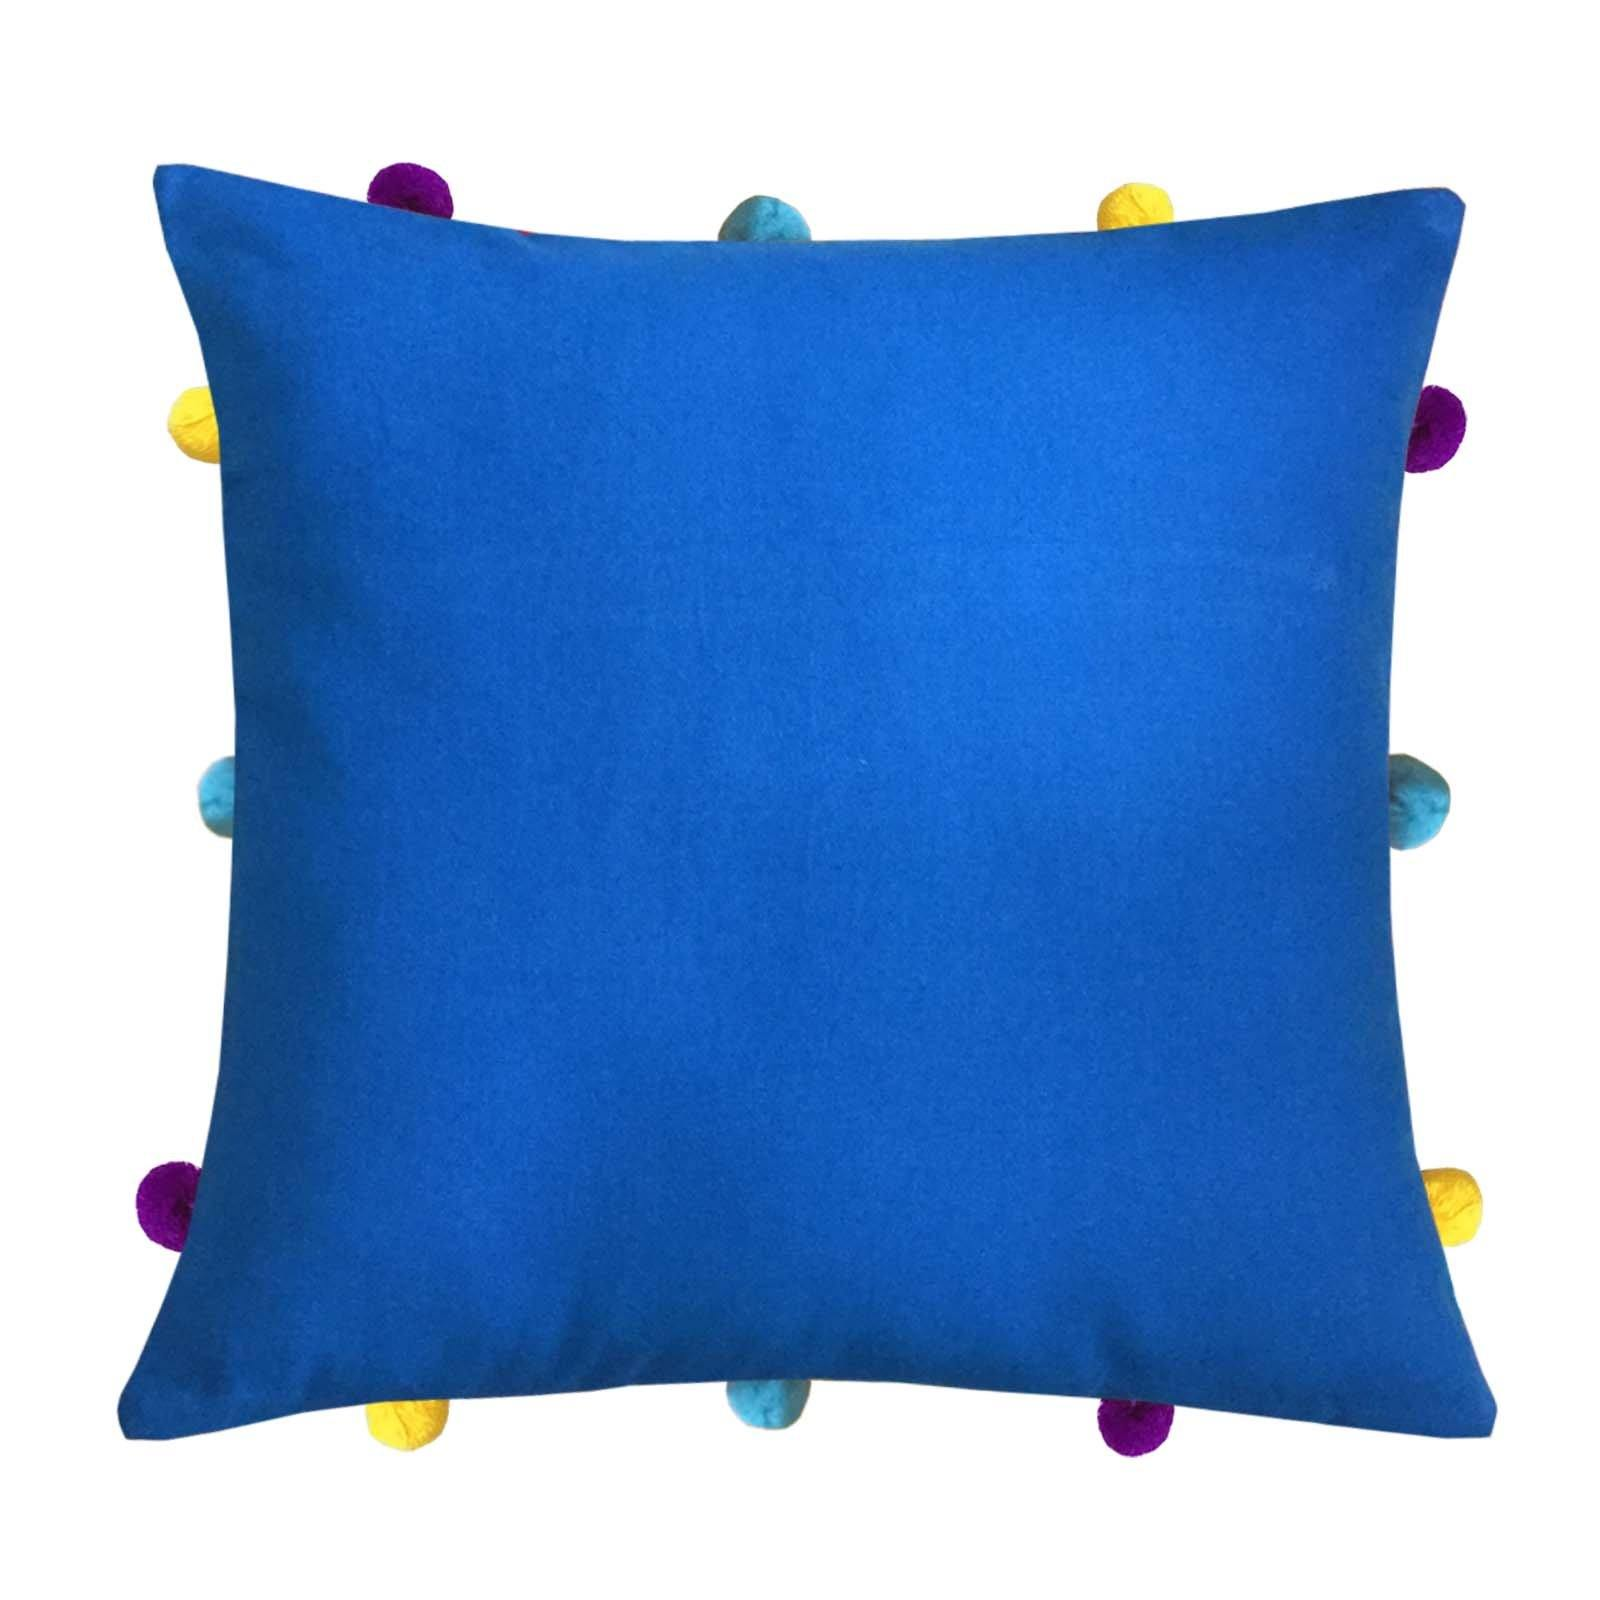 "Lushomes Sky Diver Cushion Cover with Colorful pom poms (Single pc, 12 x 12"") - Lushomes"